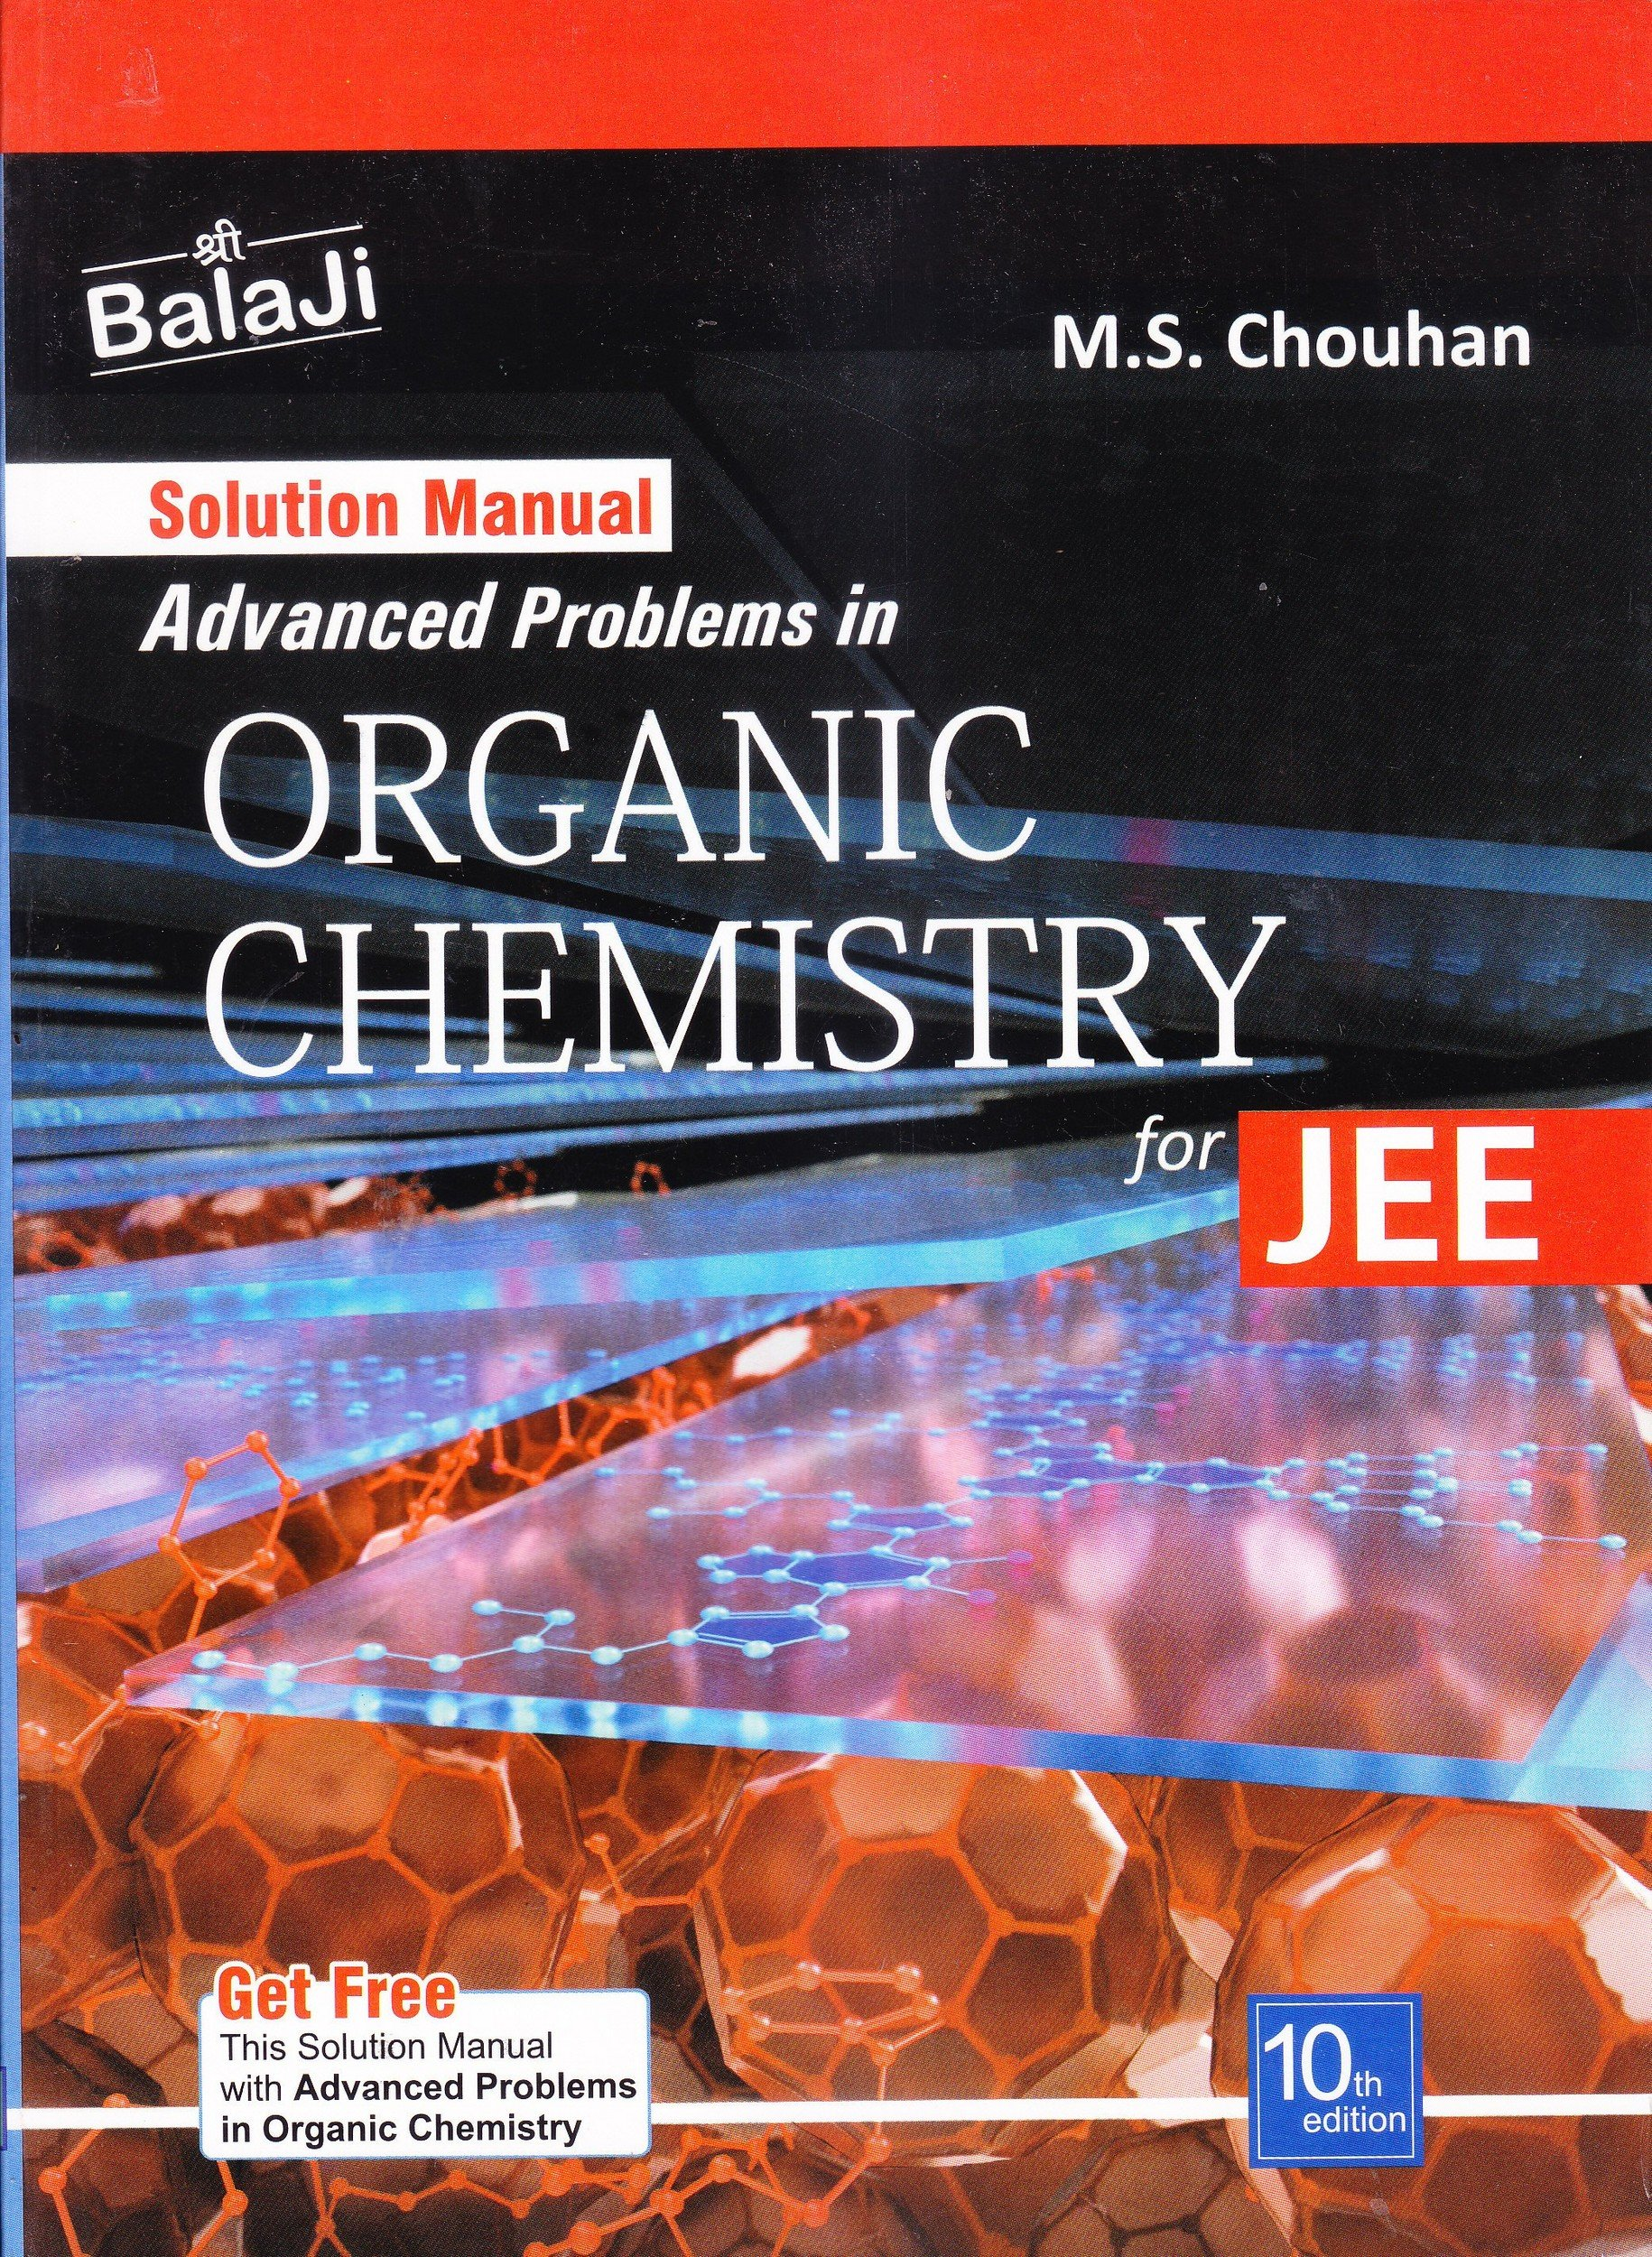 chemistry question solver physical chemistry problem solver pdf  in buy advanced problems in organic chemistry for jee book in buy advanced problems in organic